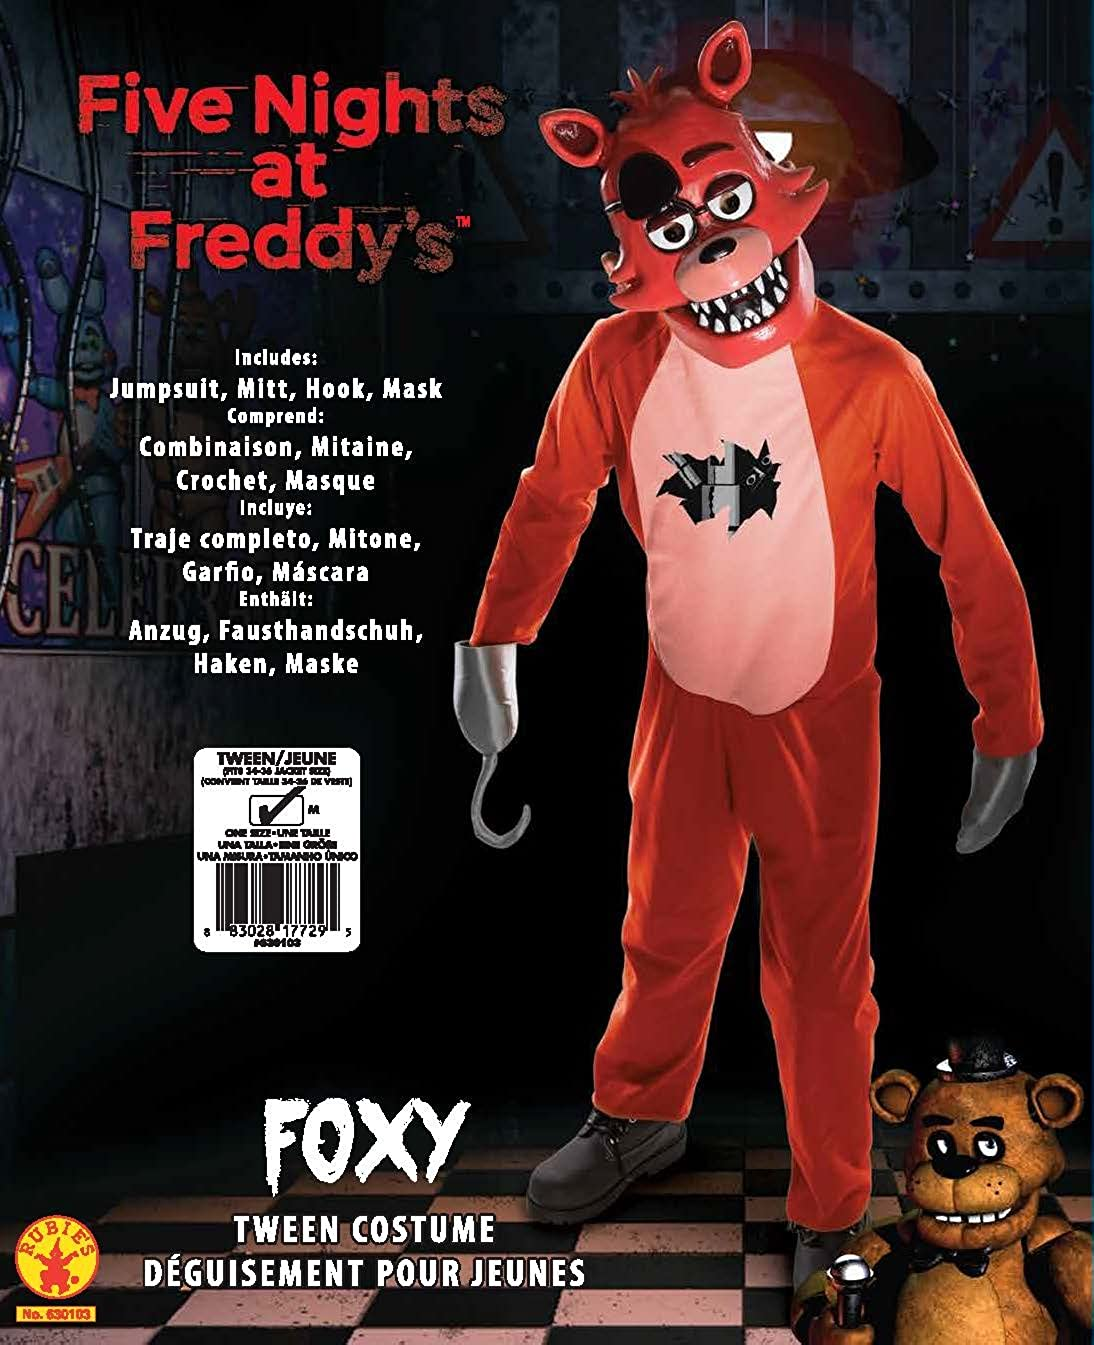 Amazon.com: Rubies Five Nights at Freddy s Foxy Tween ...